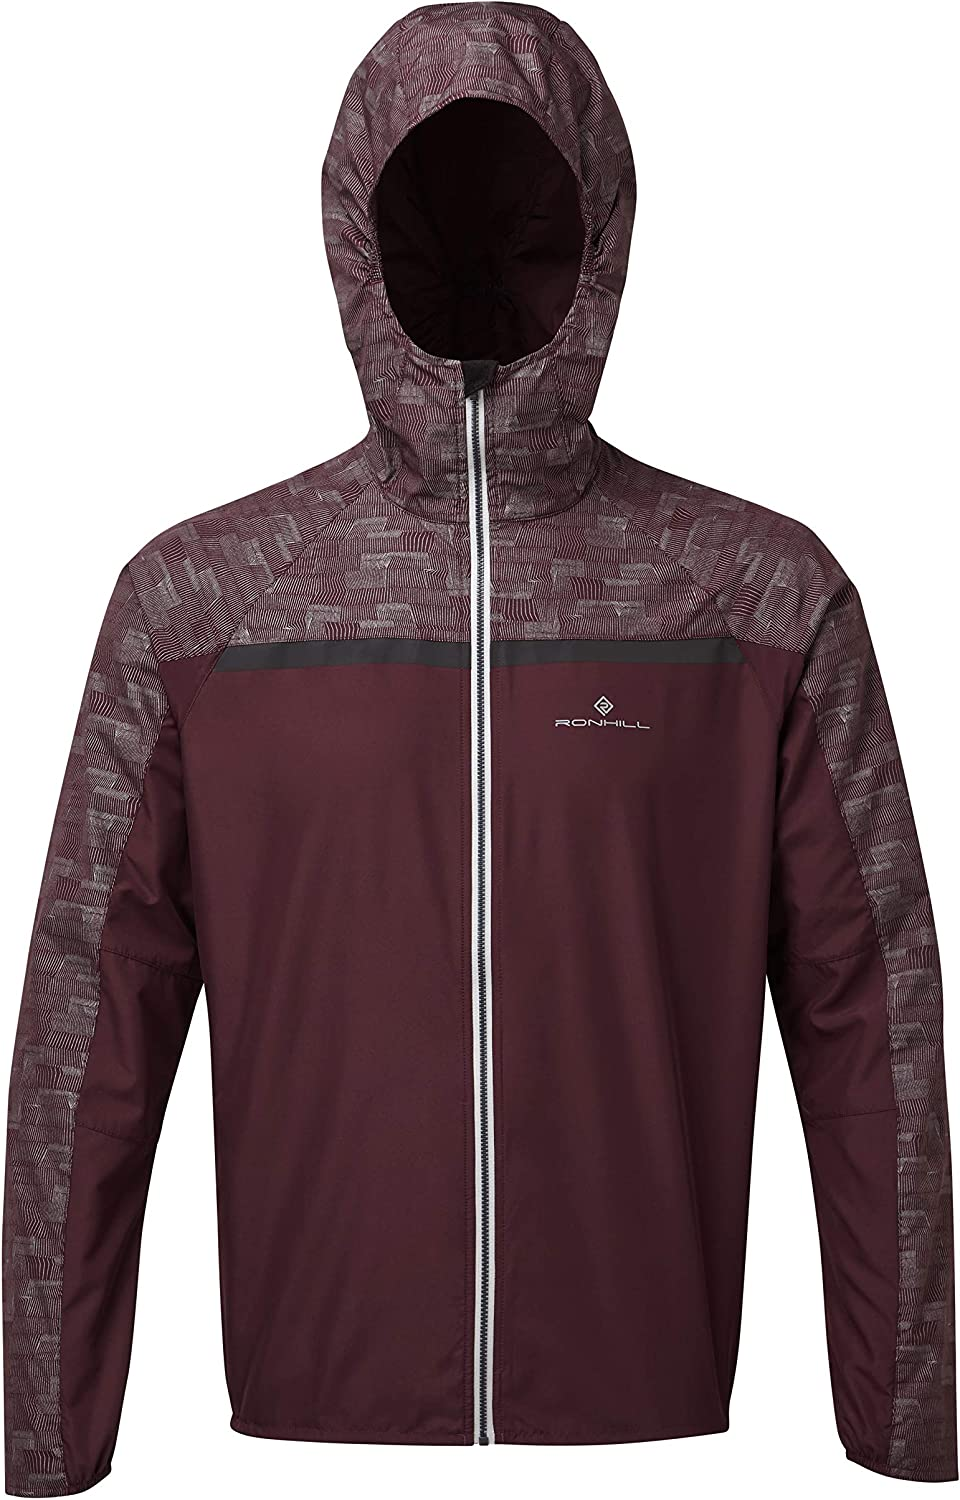 Ron Hill Mens Momentum Afterlight Vented Reflective Jacket ...